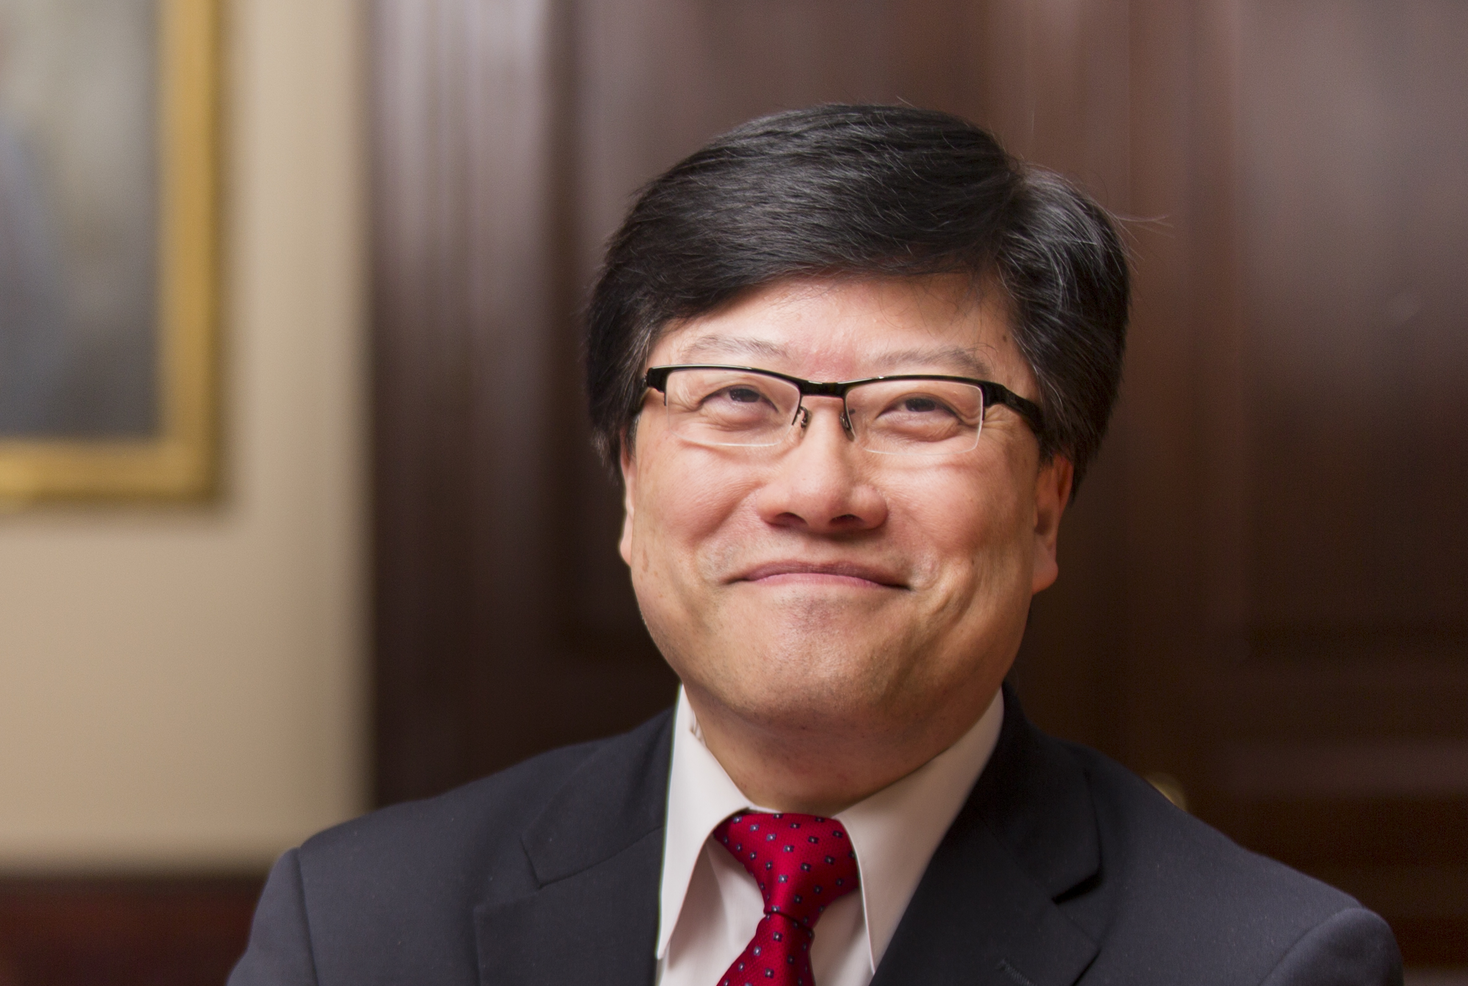 Dr. Augustine M.K. Choi. Photo credit: John Abbott